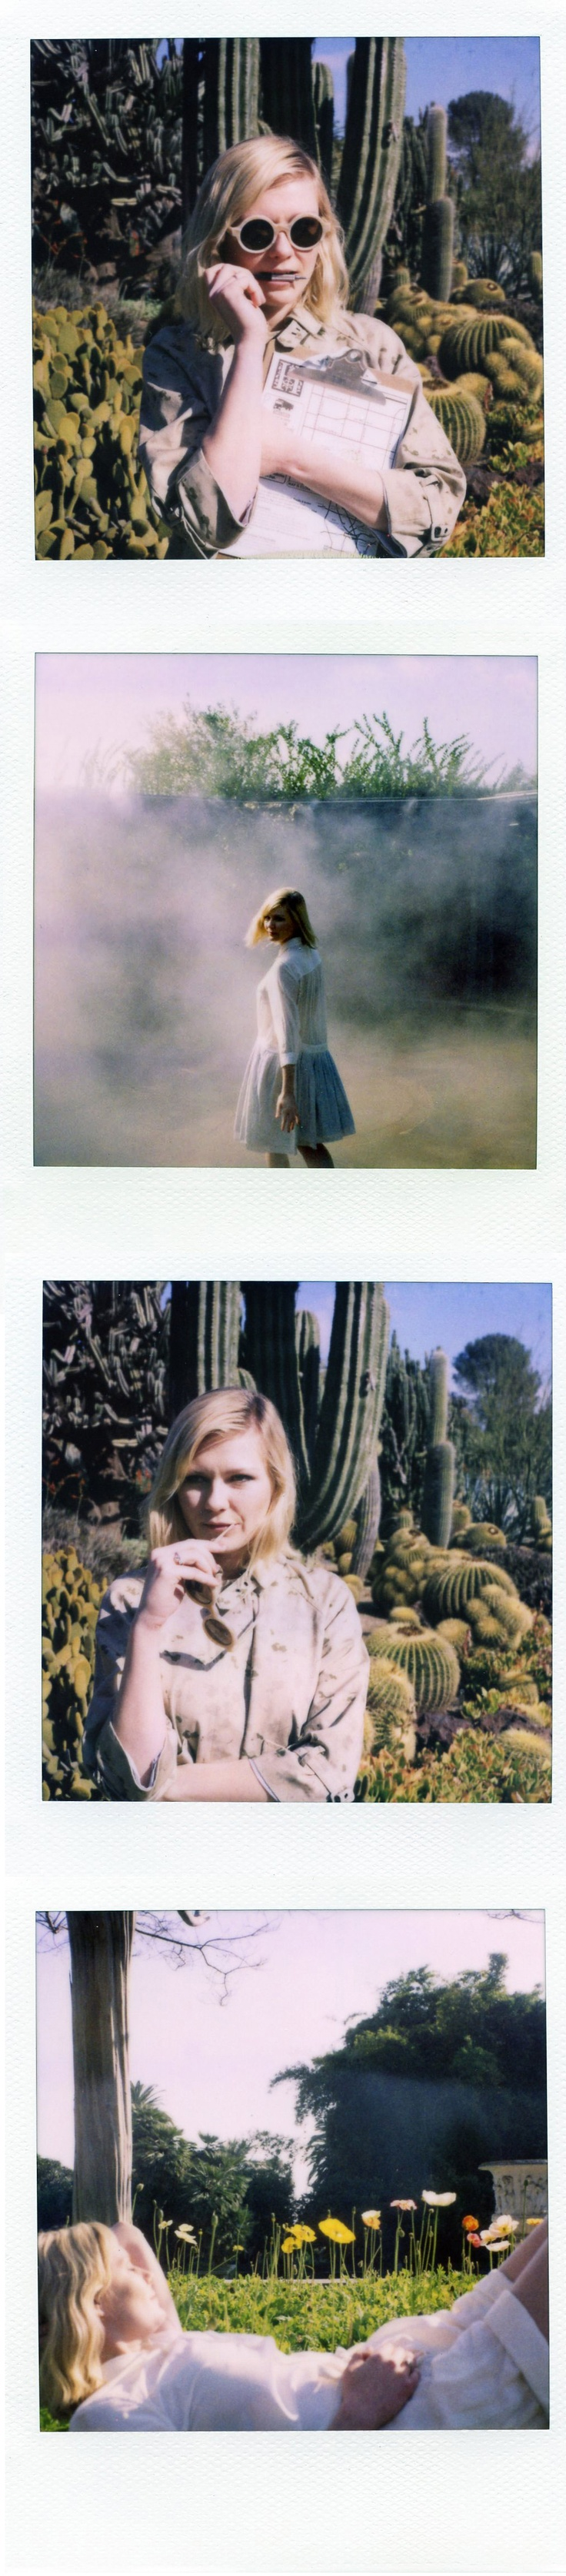 Band of Outsiders + Kirsten Dunst + Polaroid  <3